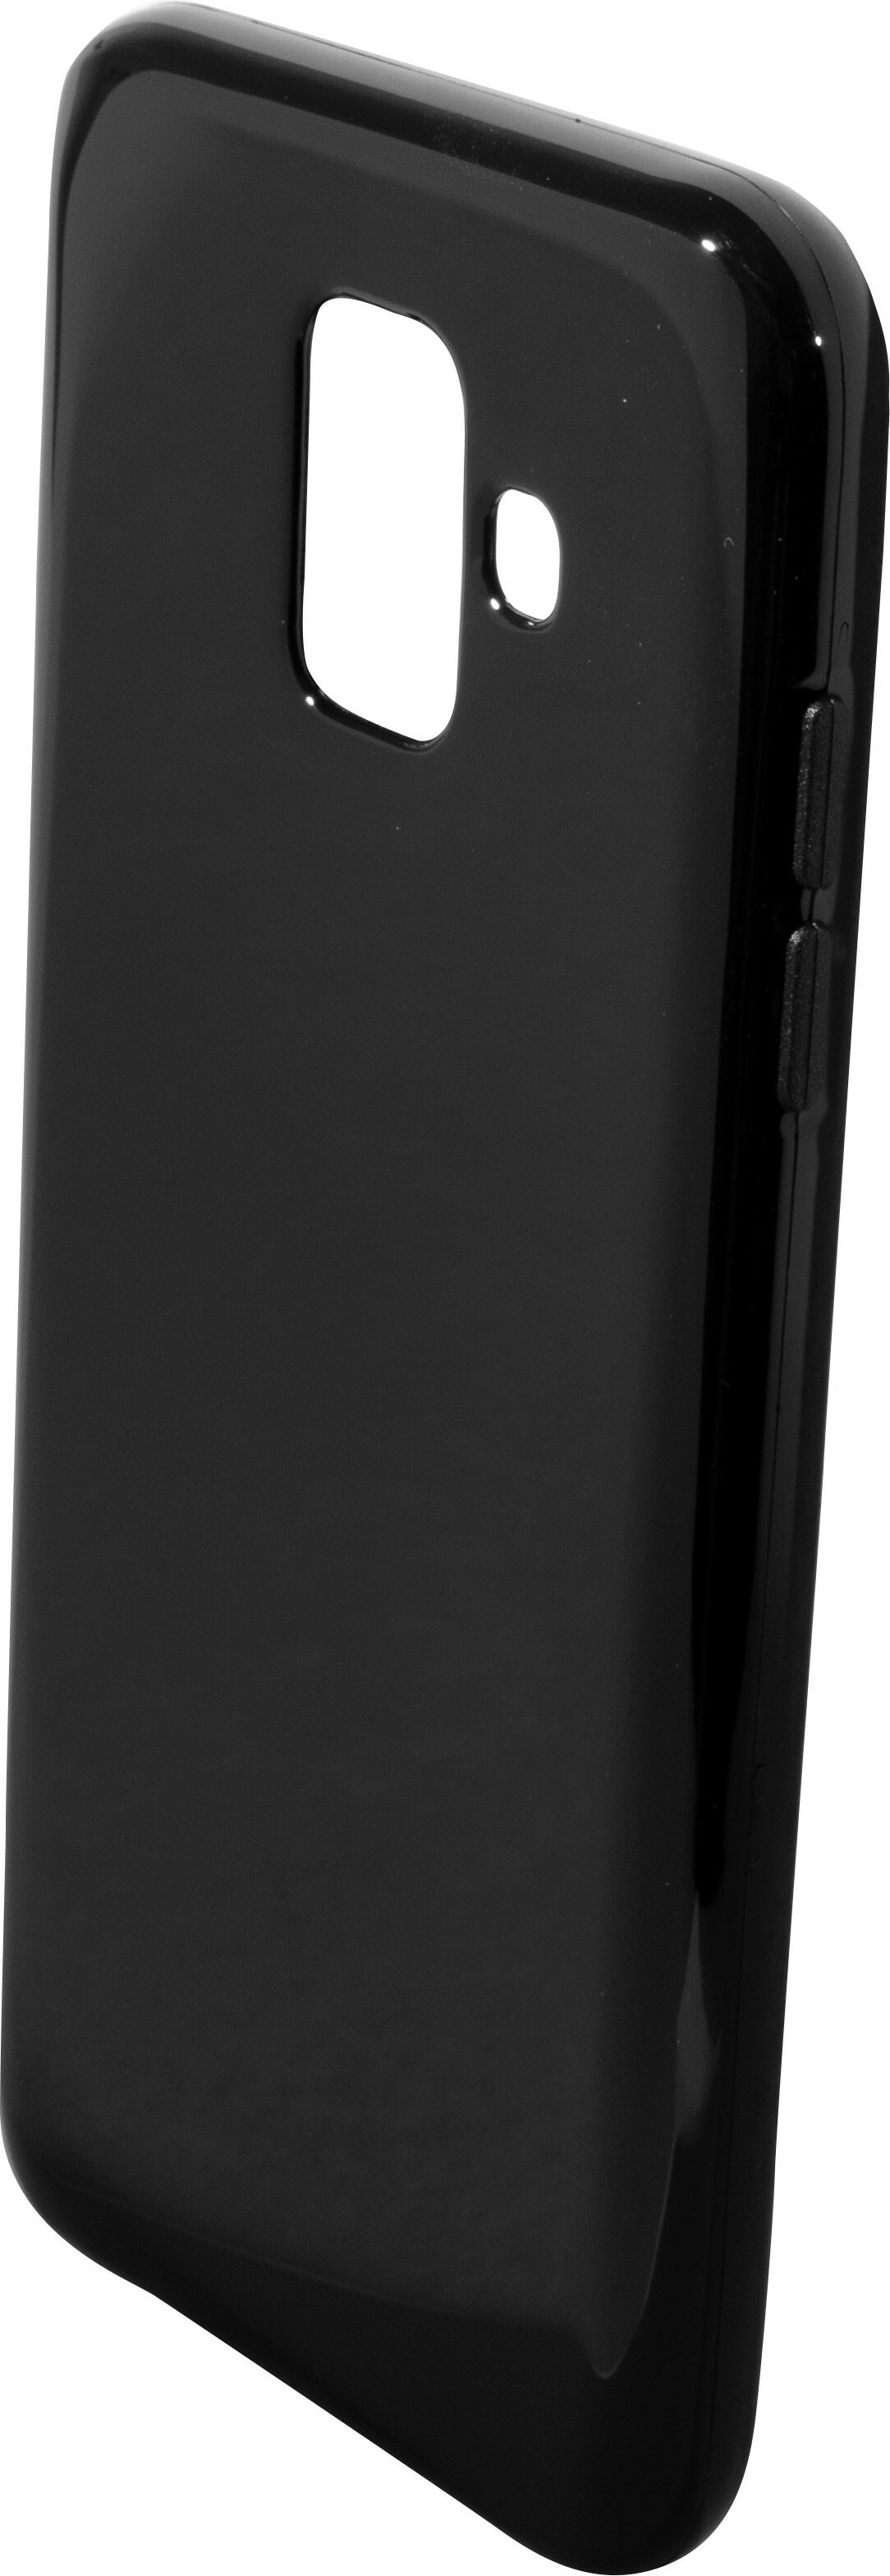 Mobiparts Essential TPU Case Samsung Galaxy A6 (2018) Black